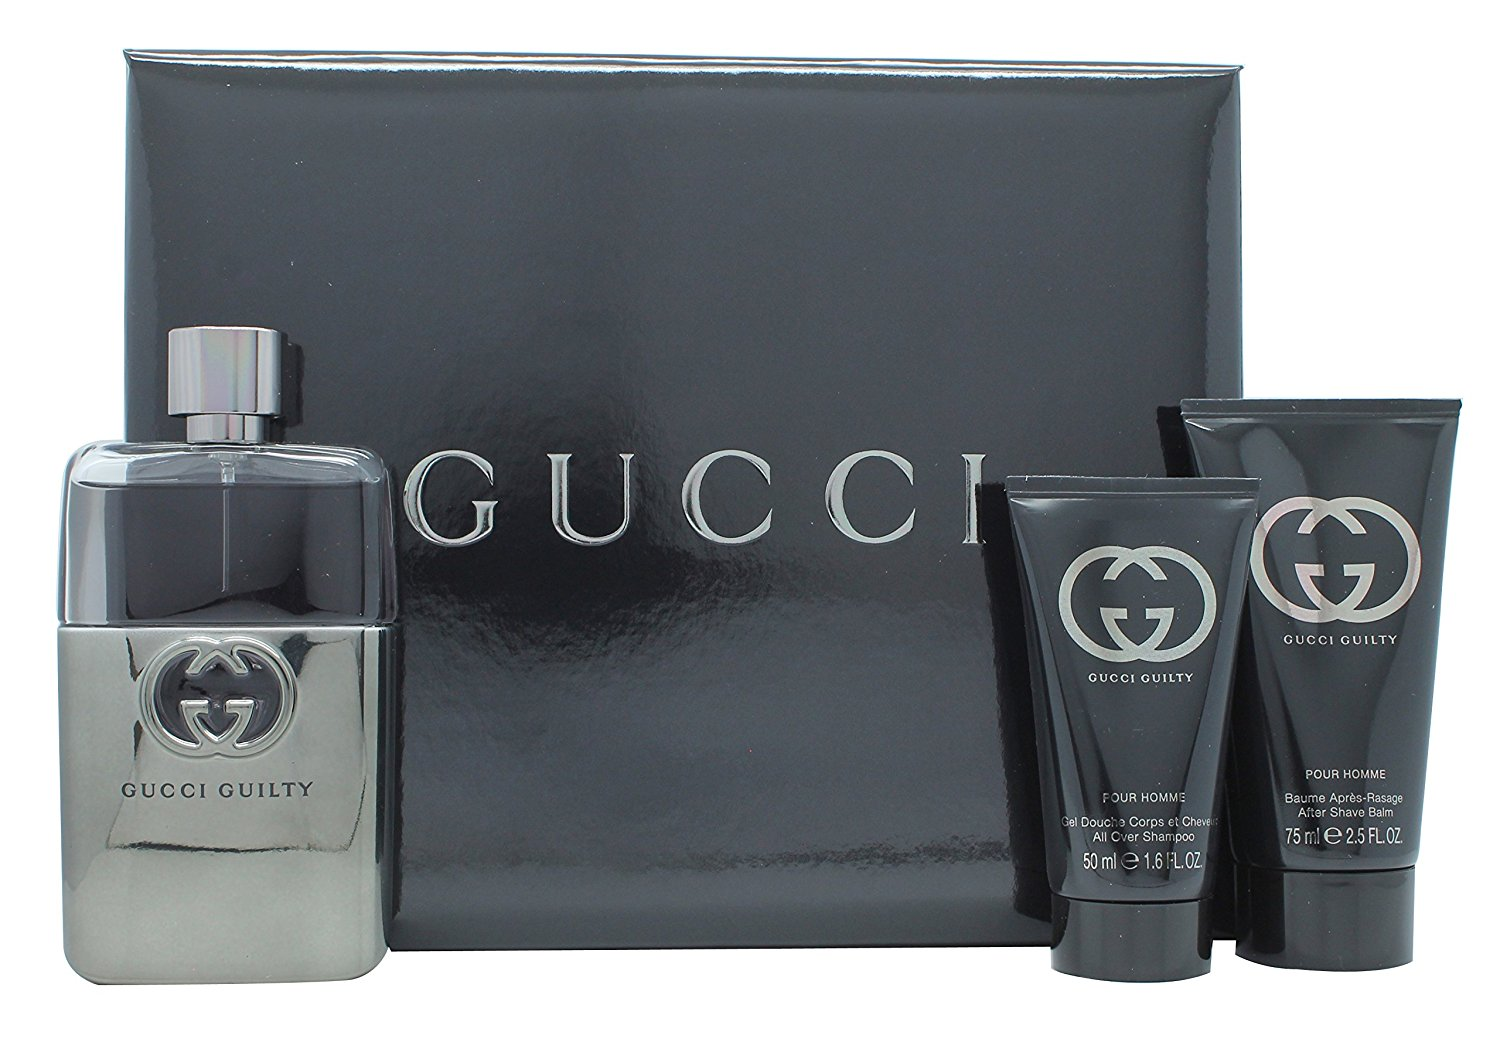 3c722e80f47 Gucci Guilty Pour Homme Gift Set Travel Collection 90ml EDT + 50ml A ...